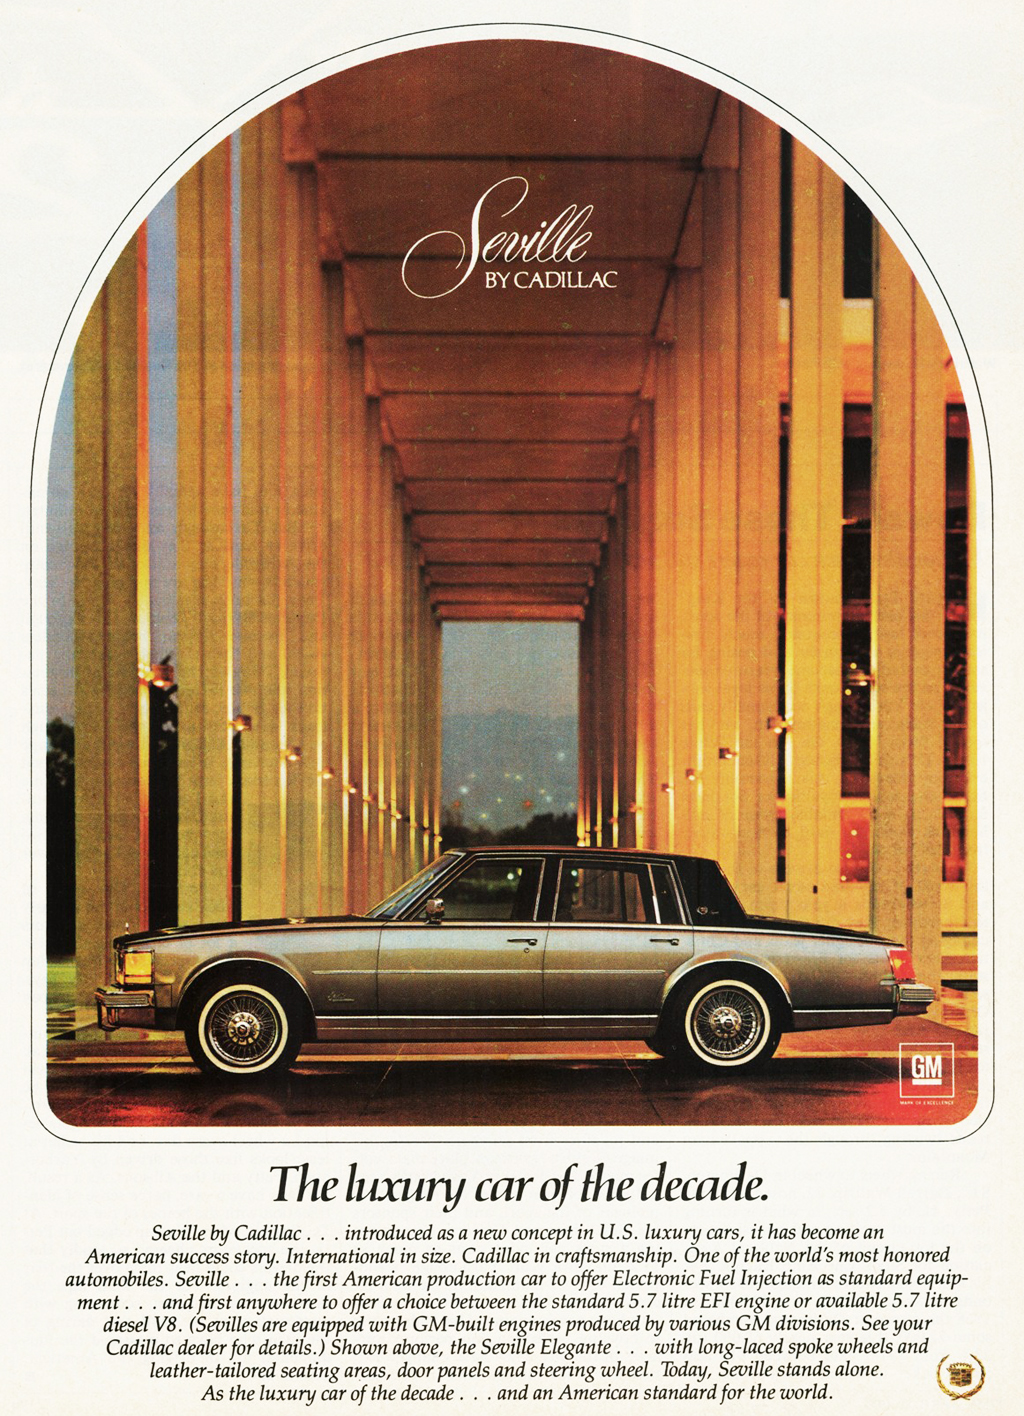 1979 Cadillac Seville Elegante Ad Classic Cars Today Online